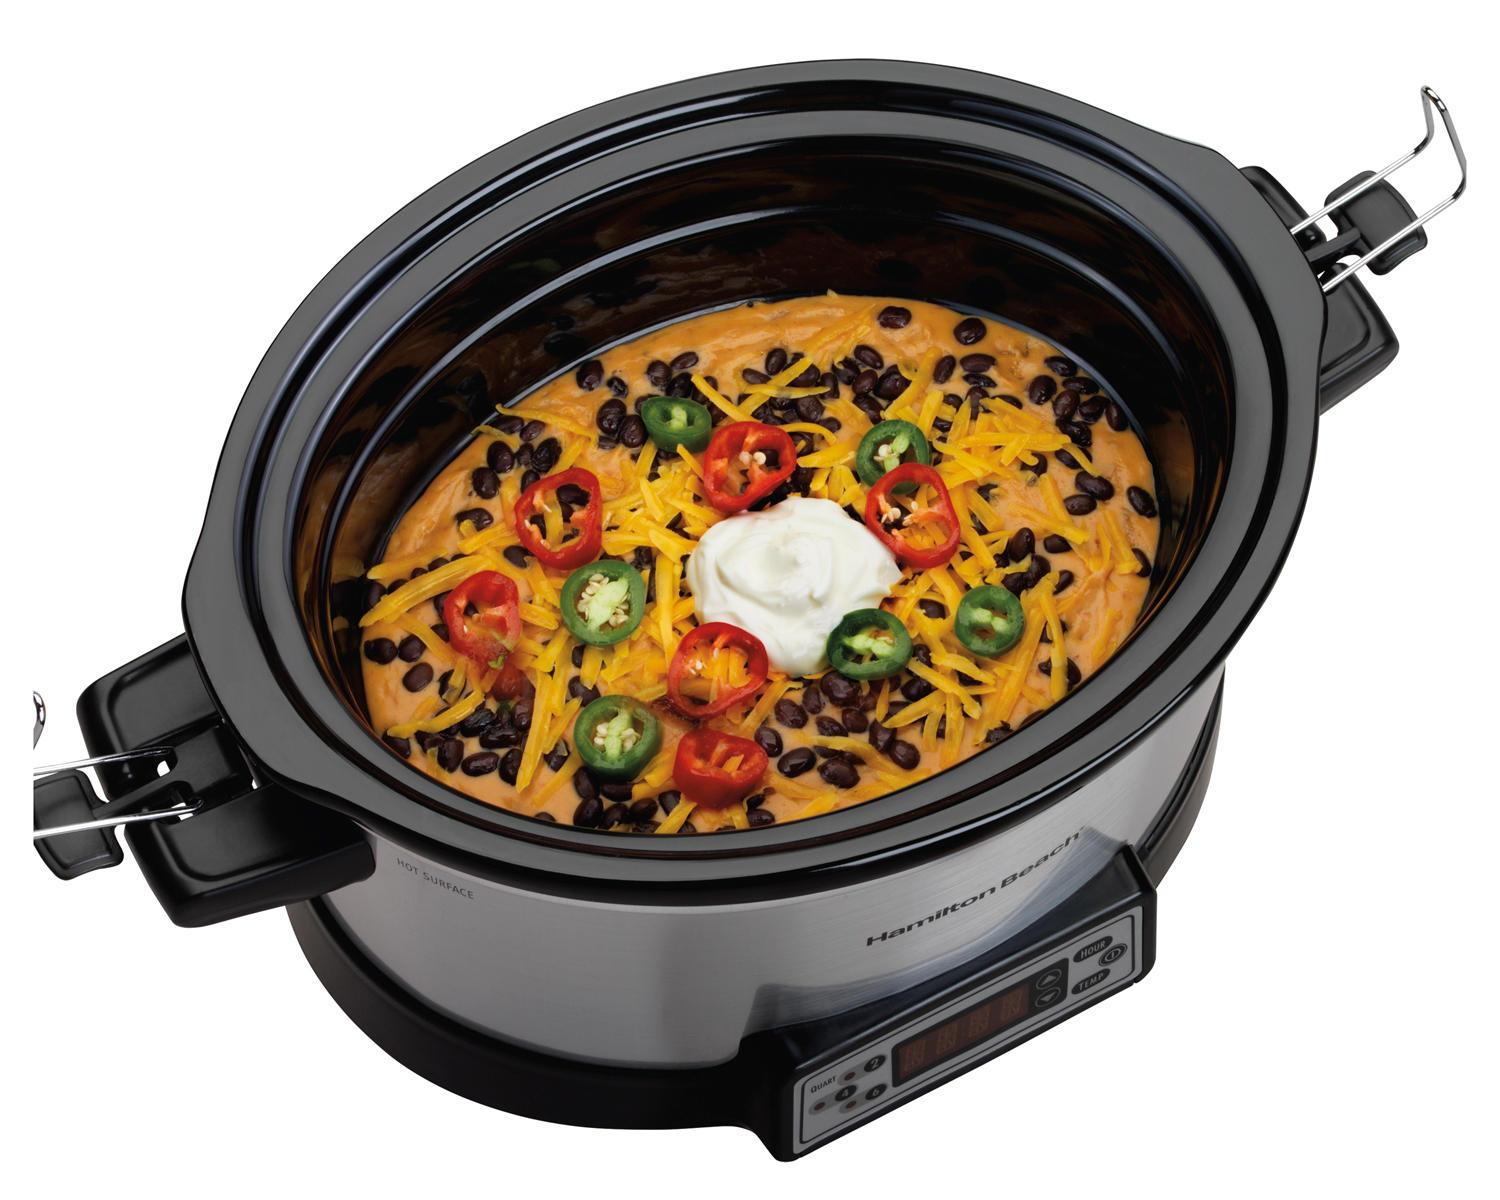 Big party or small, root for this Hamilton Beach slow cooker